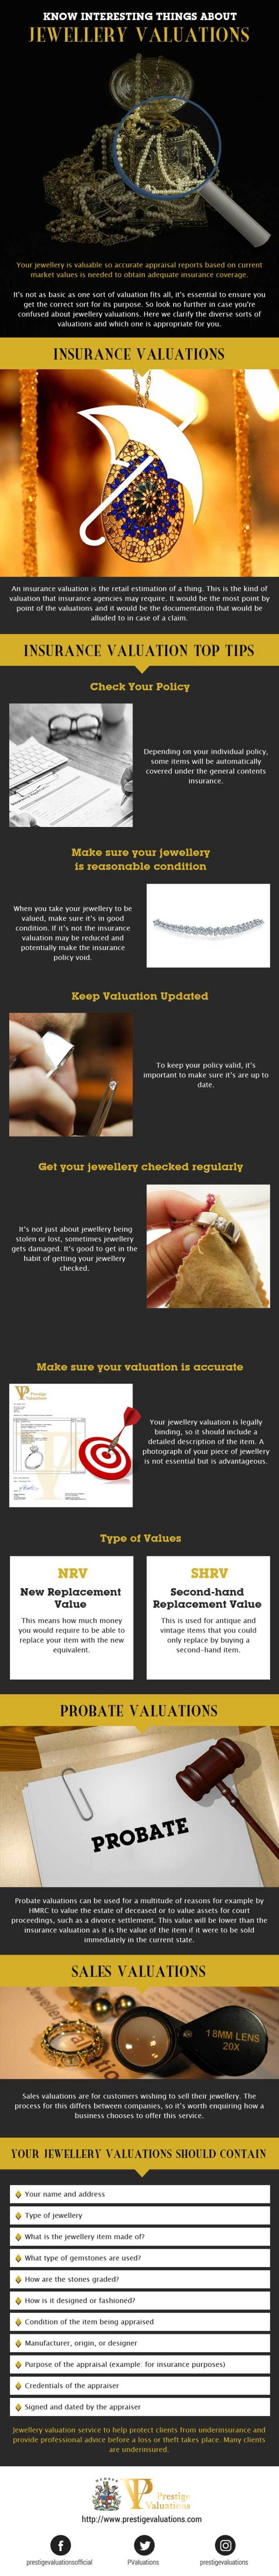 The Interesting facts about Jewellery Valuations and all you need to know